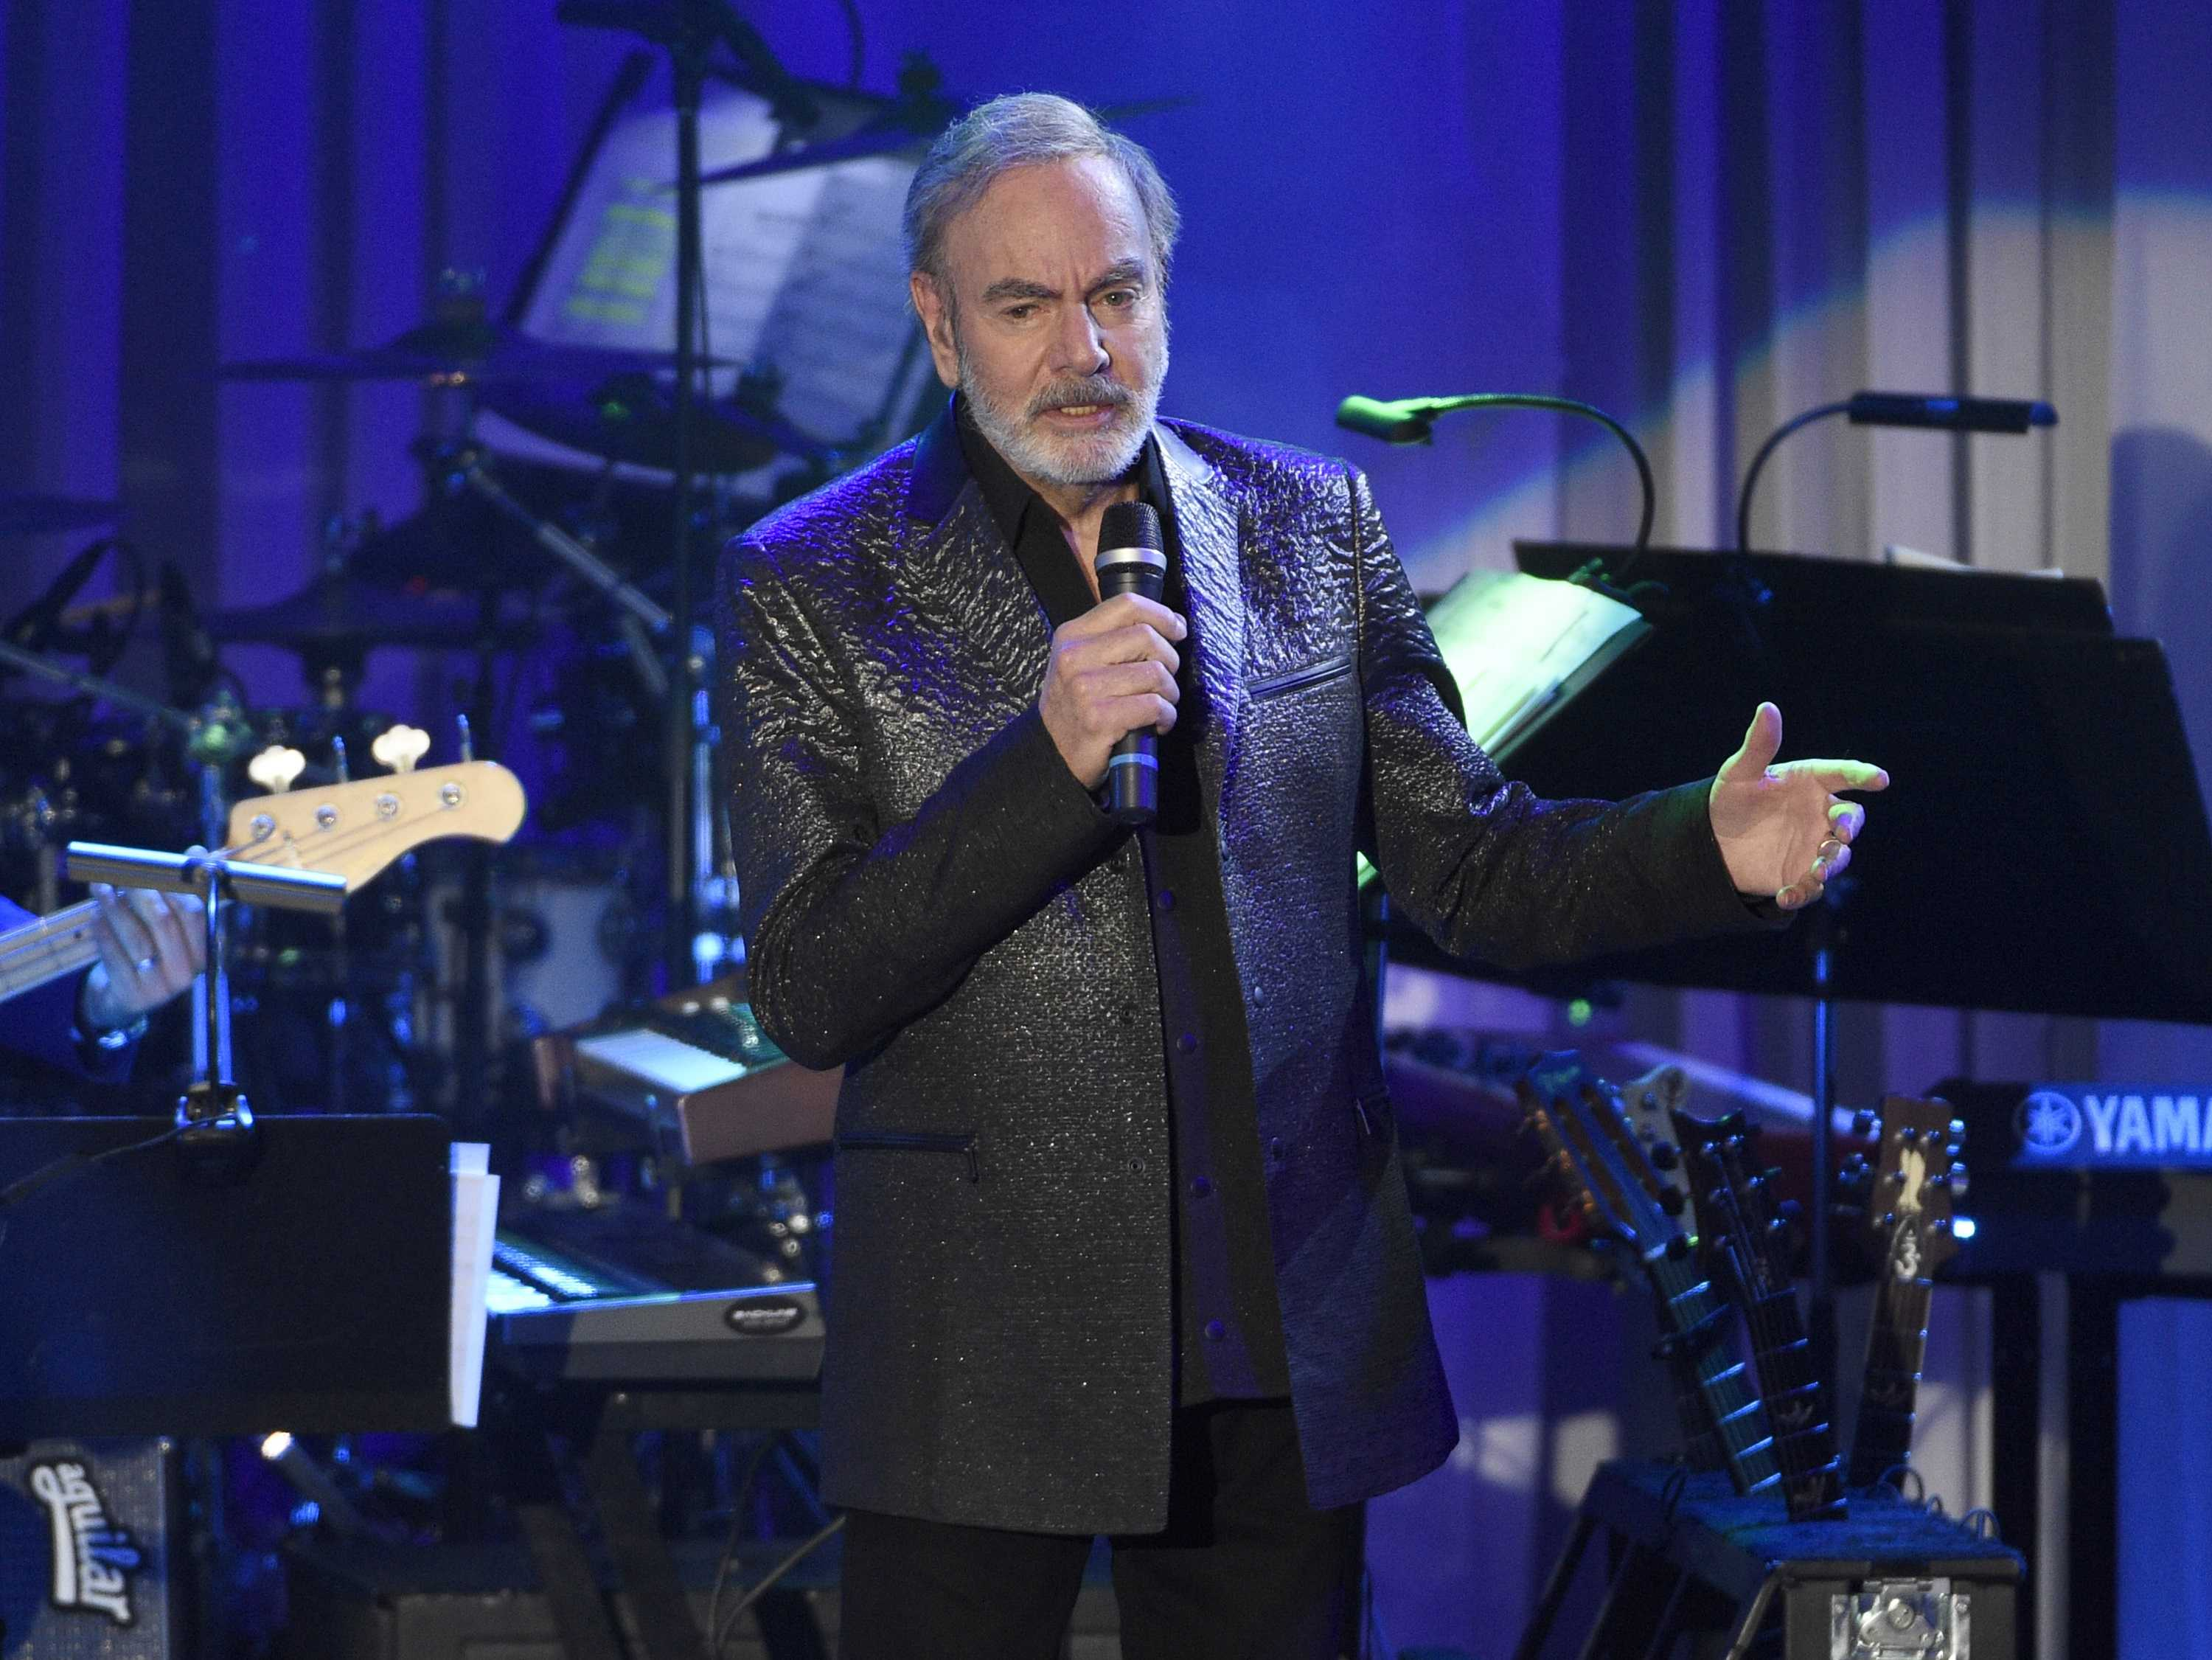 Neil Diamond announces retirement from touring: